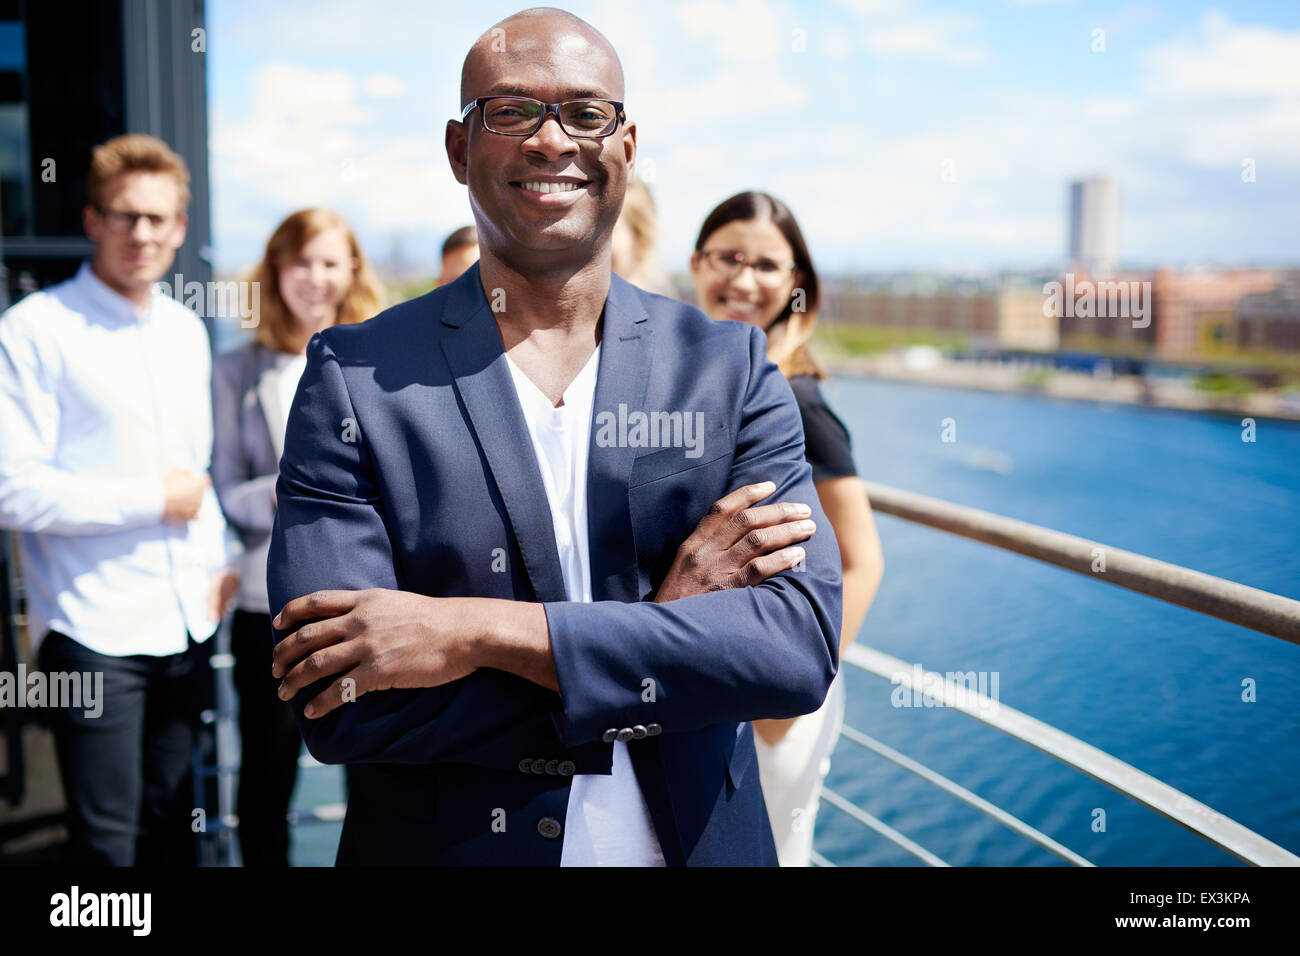 Black male executive standing with arms crossed in front of colleagues - Stock Image